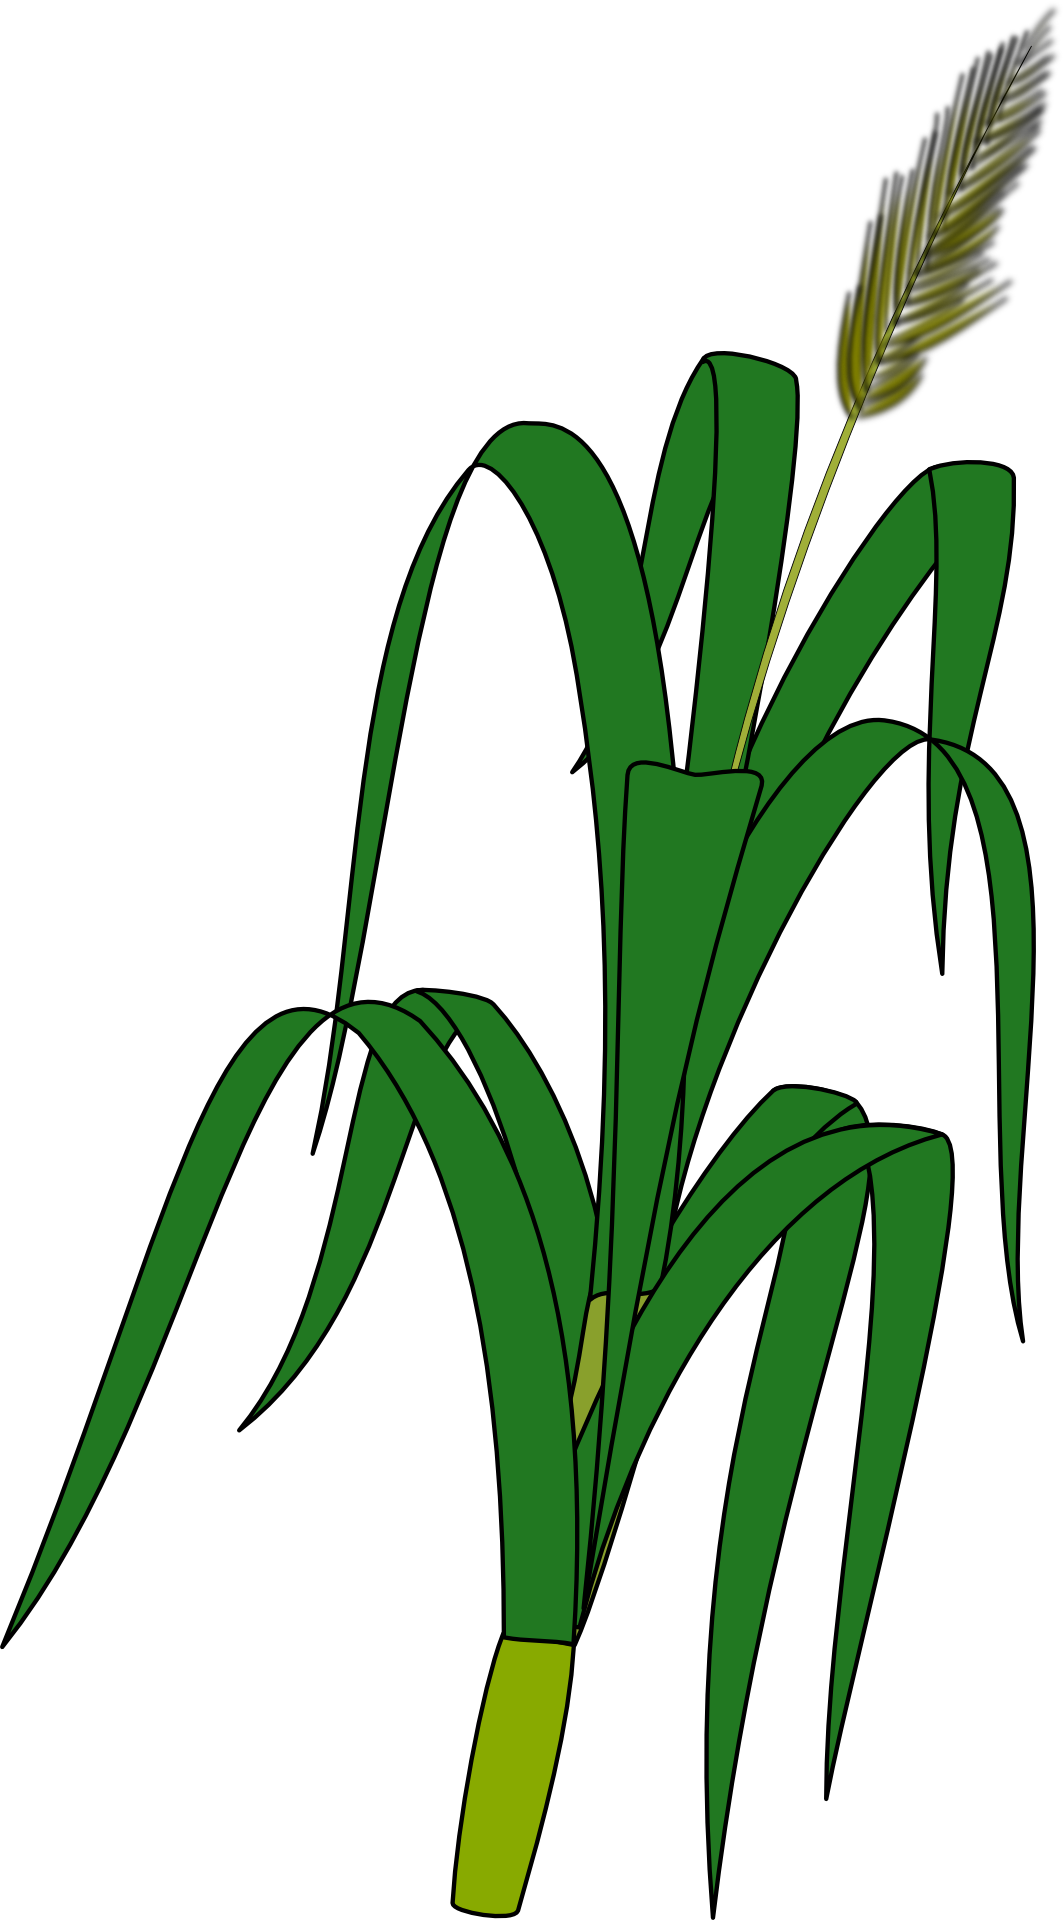 Drawn Corn Stalk Free Image See more ideas about corn stalks, wool applique, wool quilts. https pixy org licence php